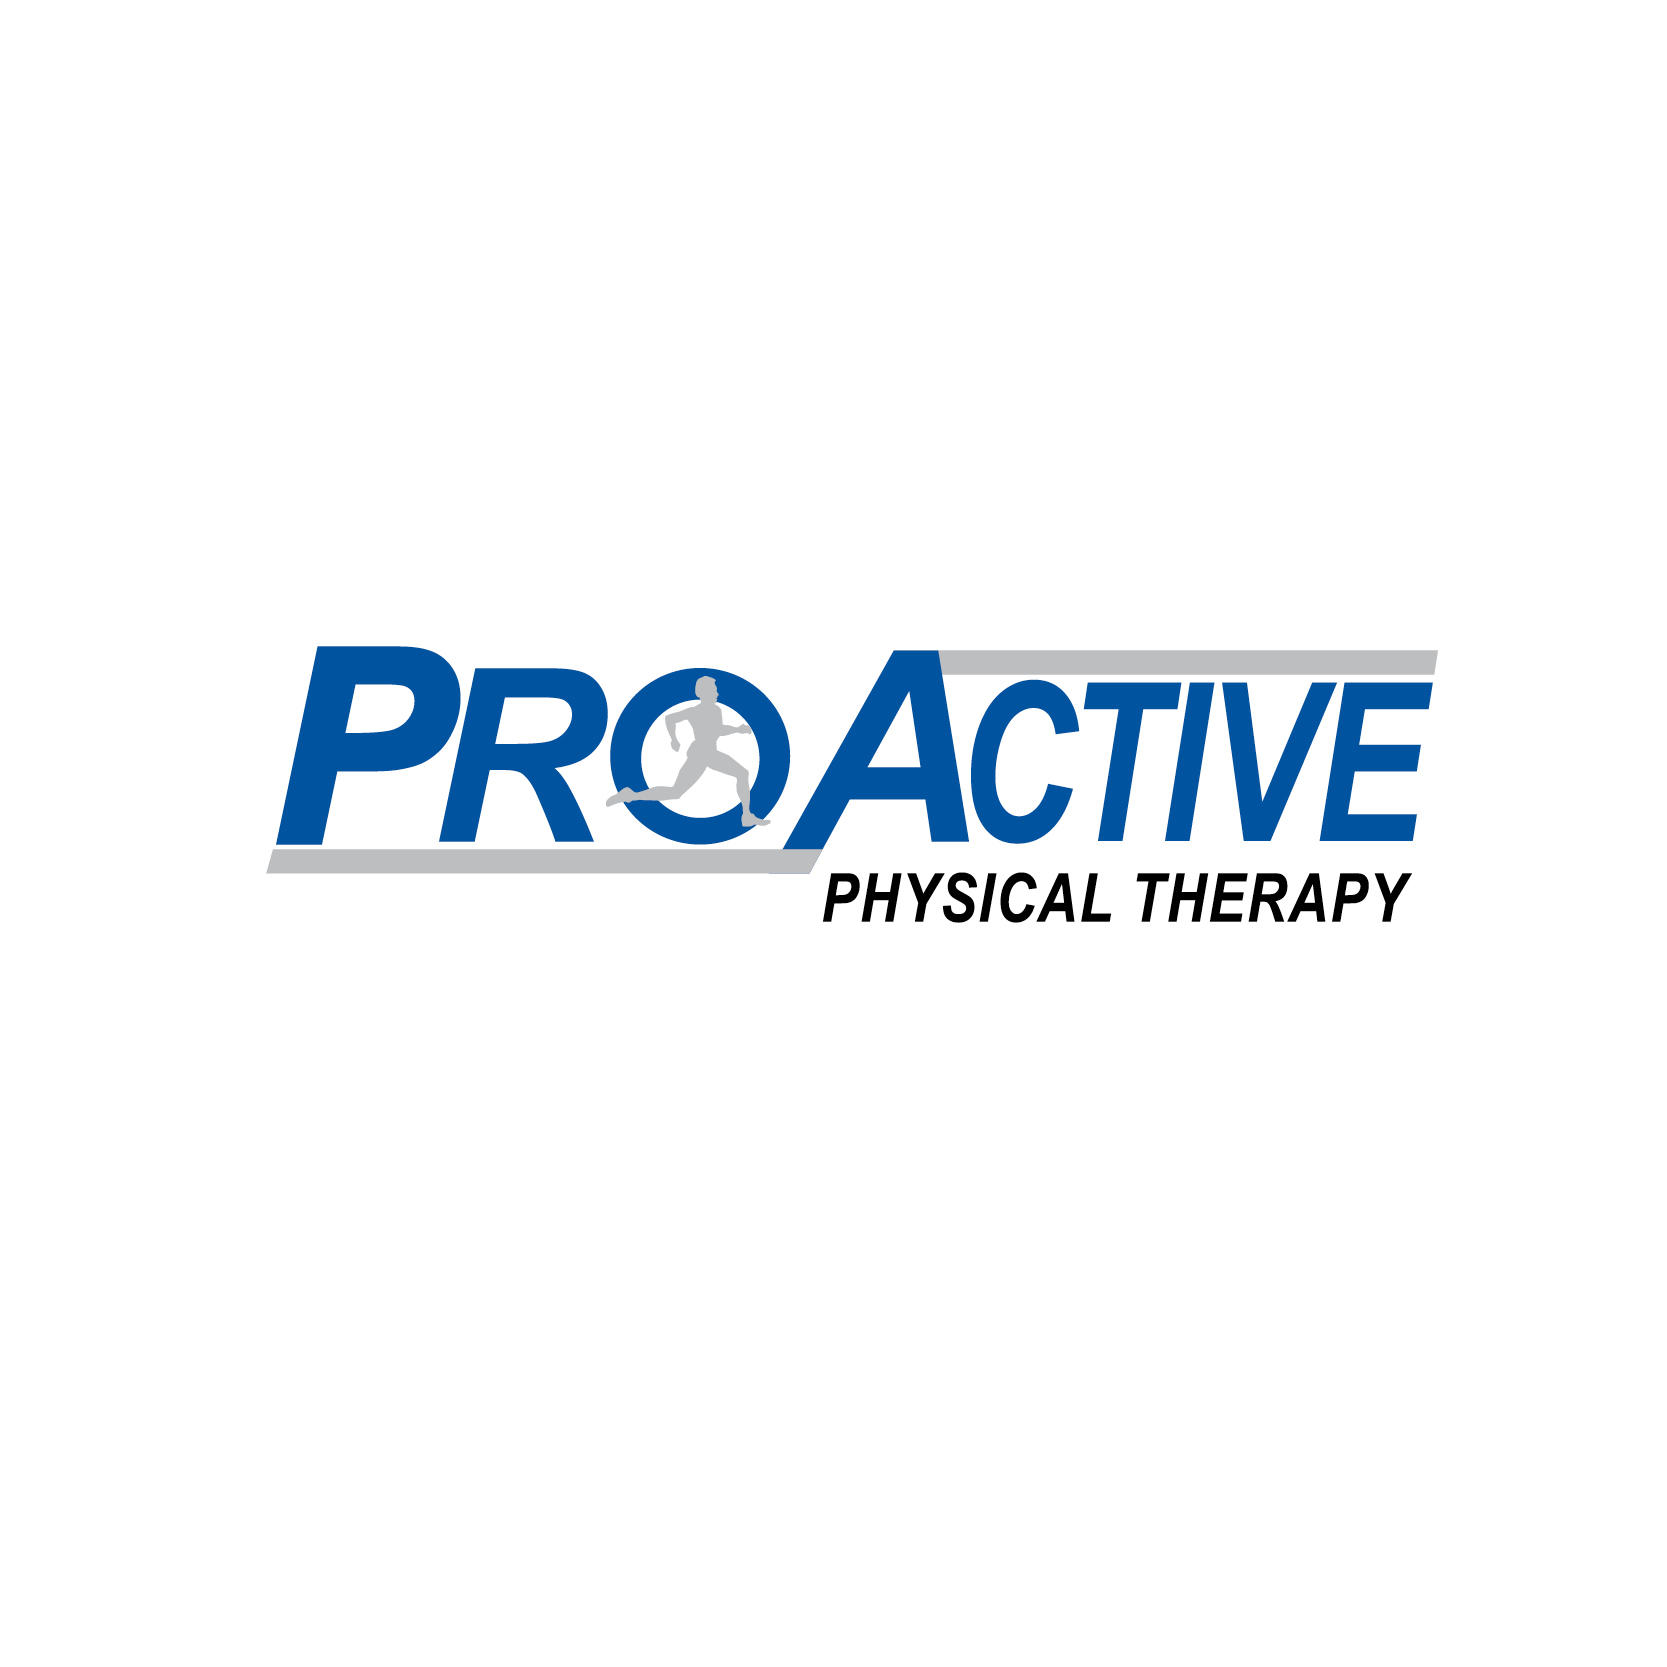 ProActive Orthopedic and Sports Physical Therapy - Vancouver, WA - Physical Therapy & Rehab